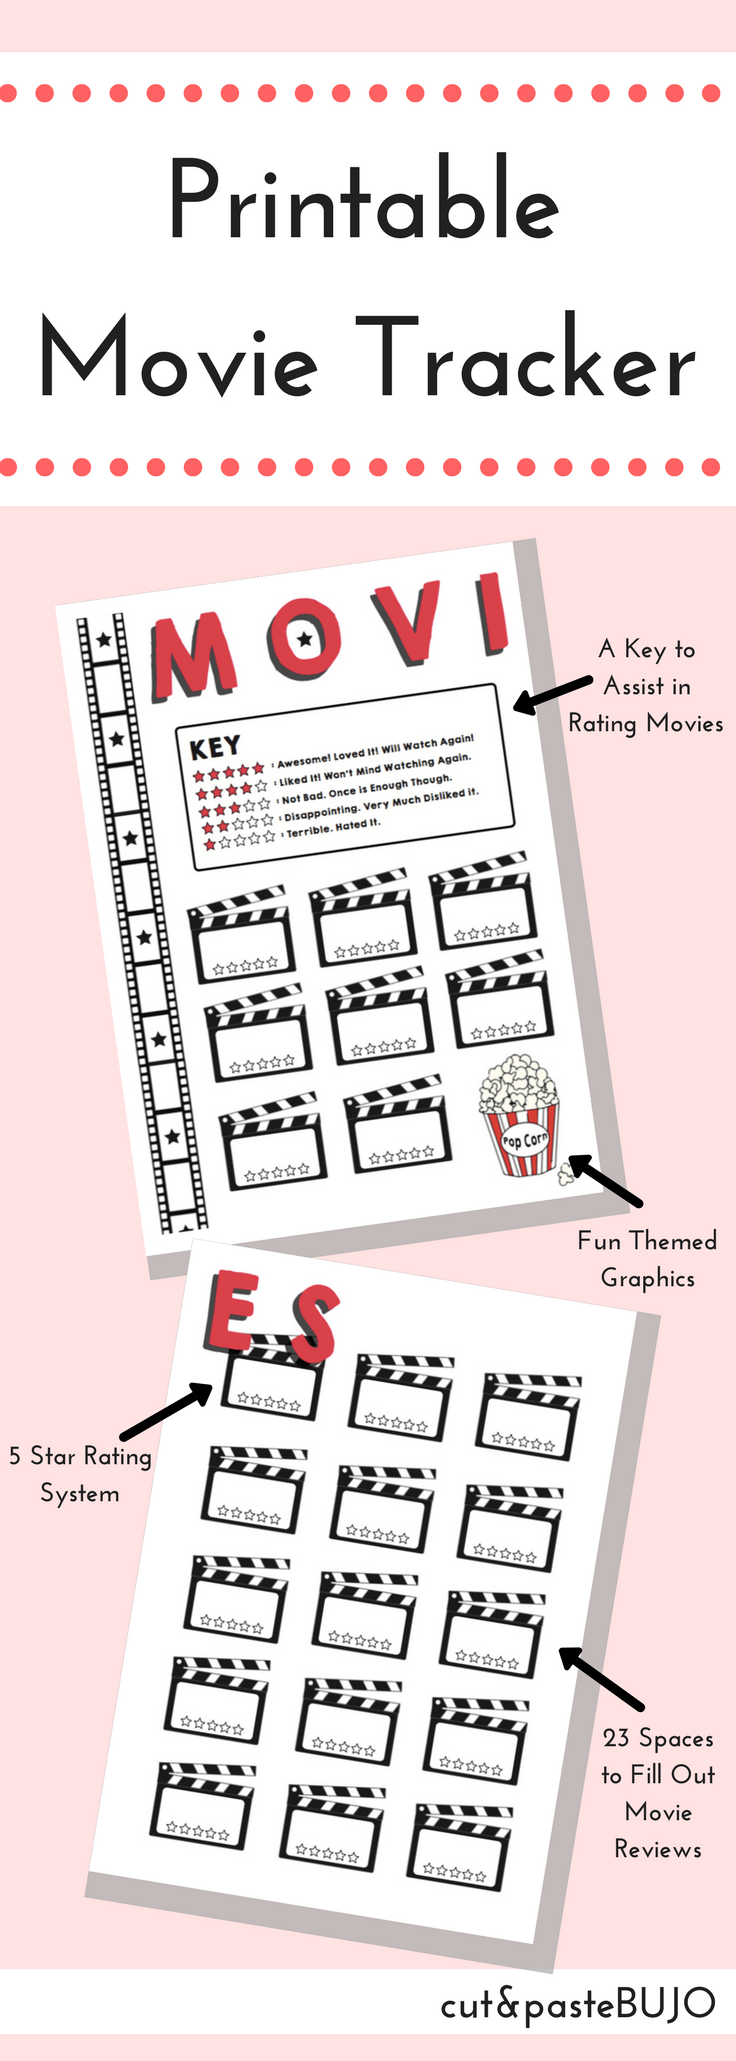 Printable Movie Tracker Movie Tracker Bullet Journal Printable 2 Printable Pages Created By Cutandpastebujo Movie Tracker Bullet Journal Films Movie Bullet